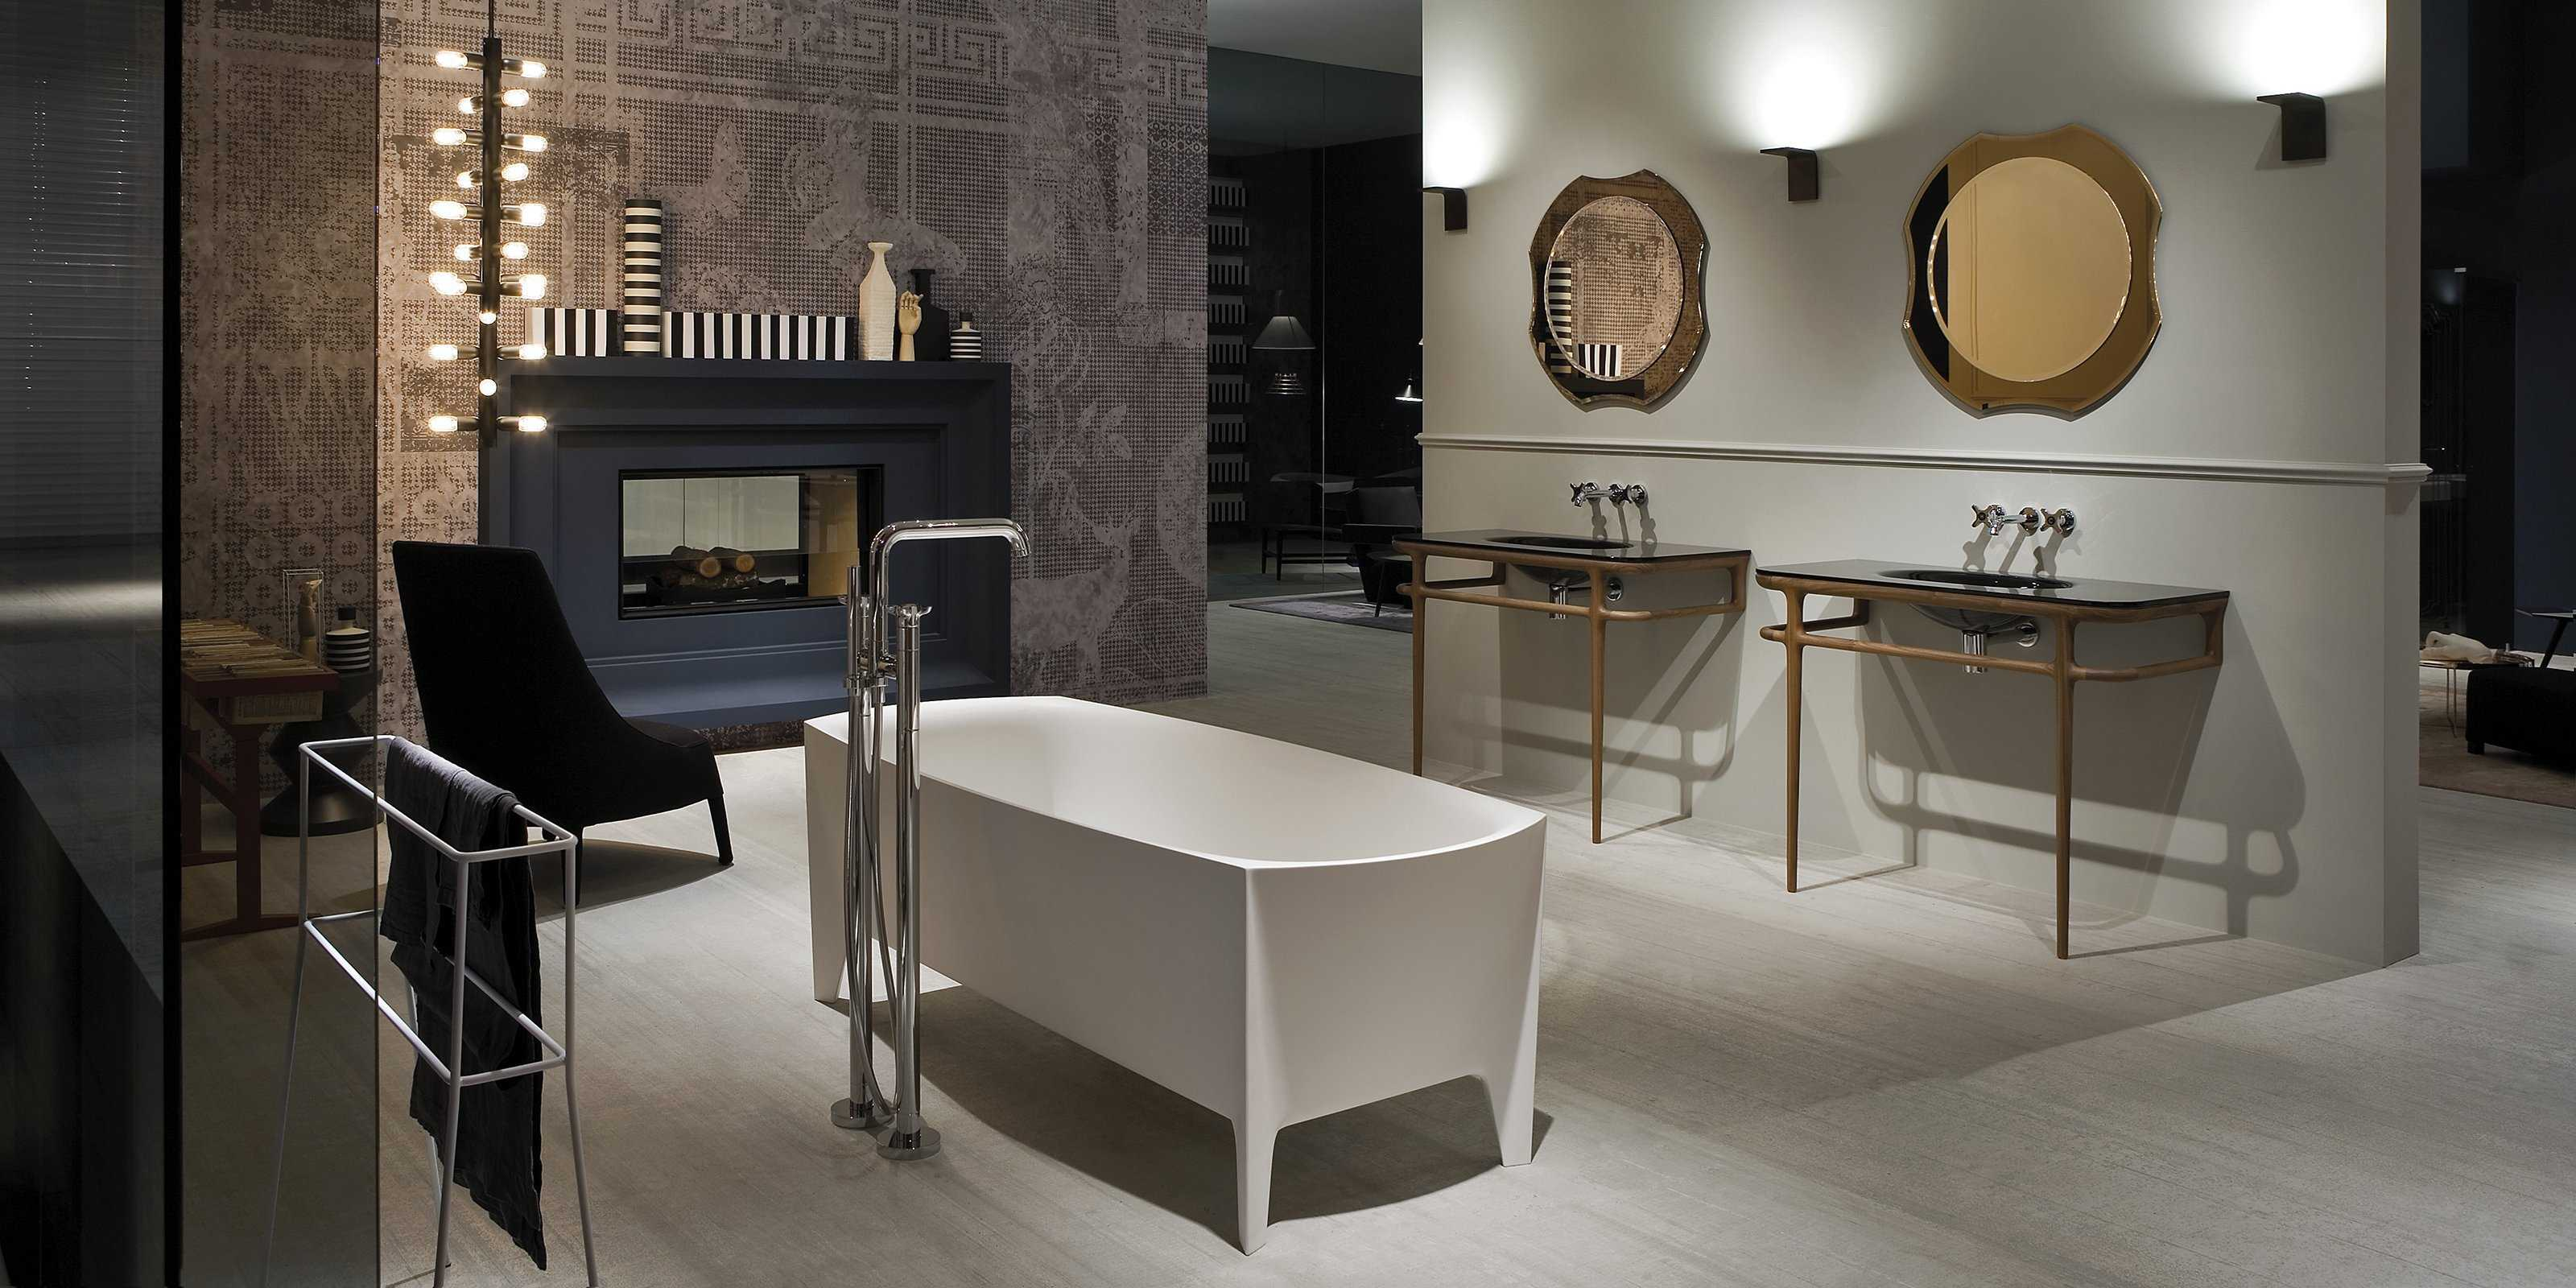 Antonio lupi milano ago bathtub by antonio lupi design design